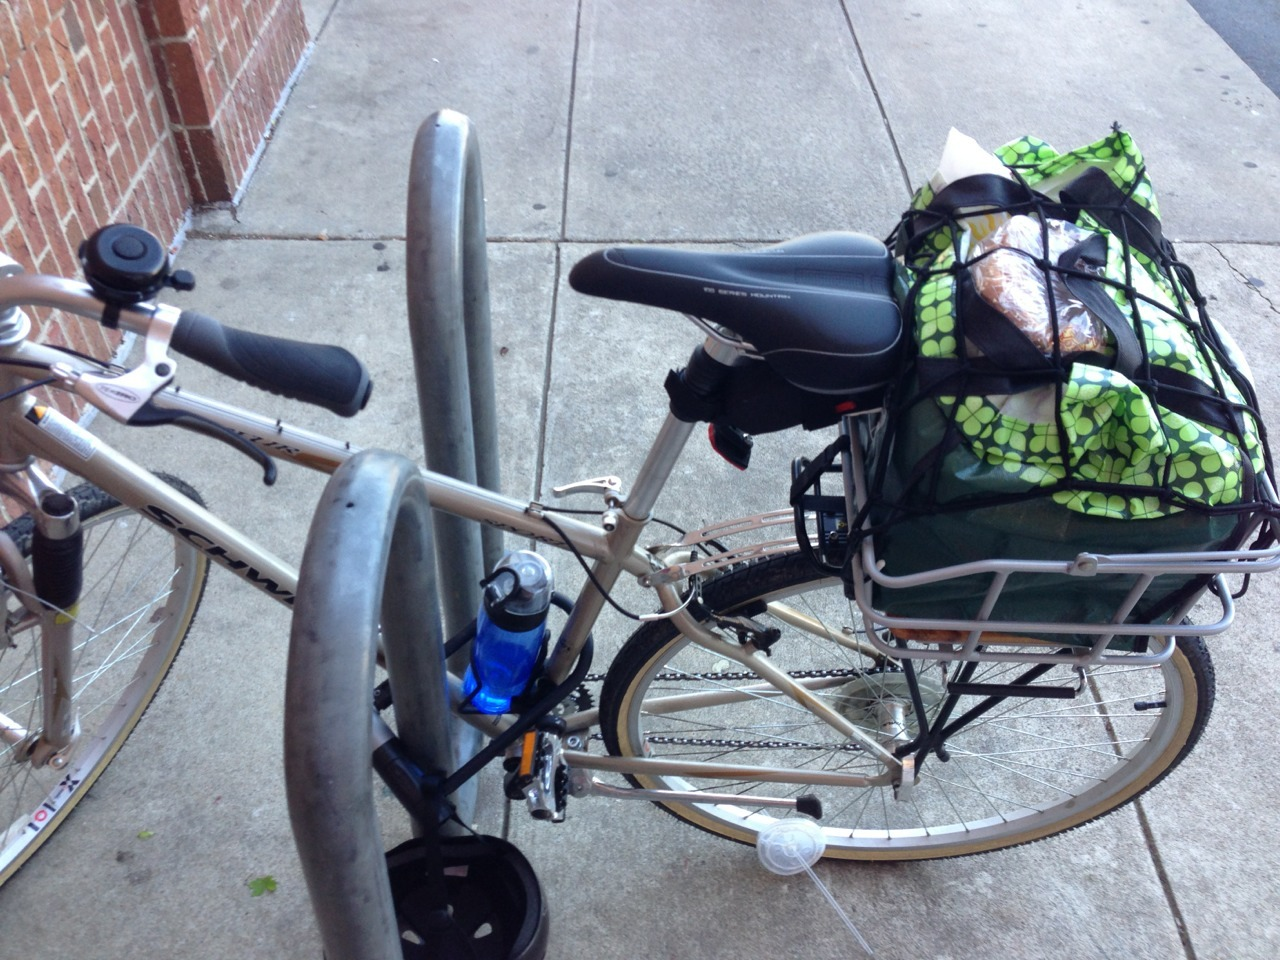 First time biking to get Groceries. EAV to Kroger Edgewood via Clifton, Hosea Williams, Whitefoord, and Hardee. Pretty challenging for me. I think it was safer than trying to go to the Publix on Glenwood. Made it back with everything intact, but the bread a little smushed. Level up!   (I feel i should clarify that that's not my fast food cup top by my wheel.)